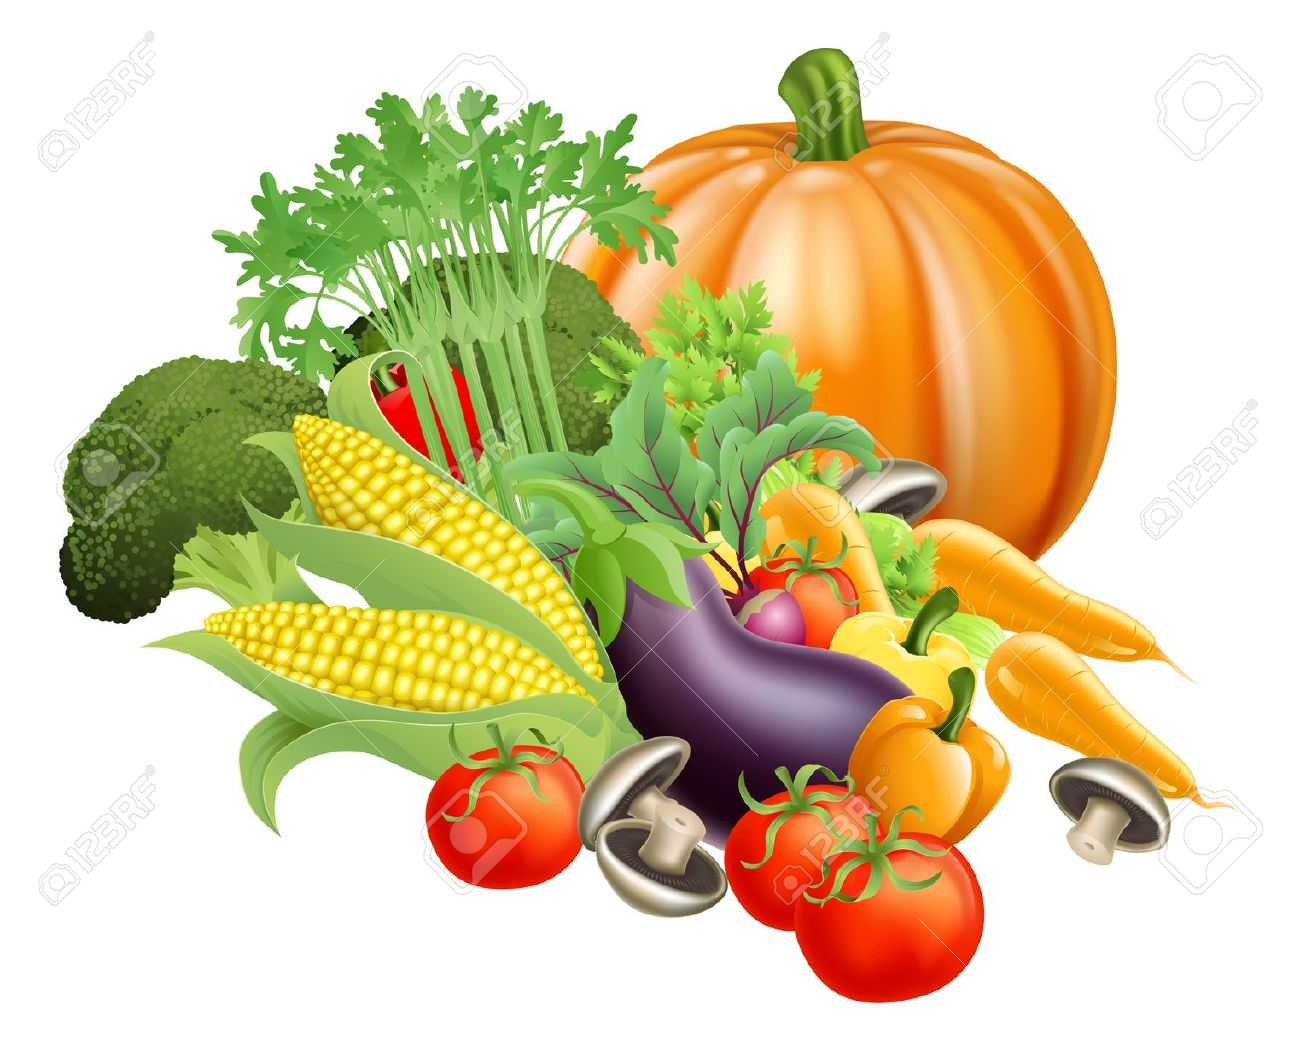 Market fresh vegetables clipart - Clipground